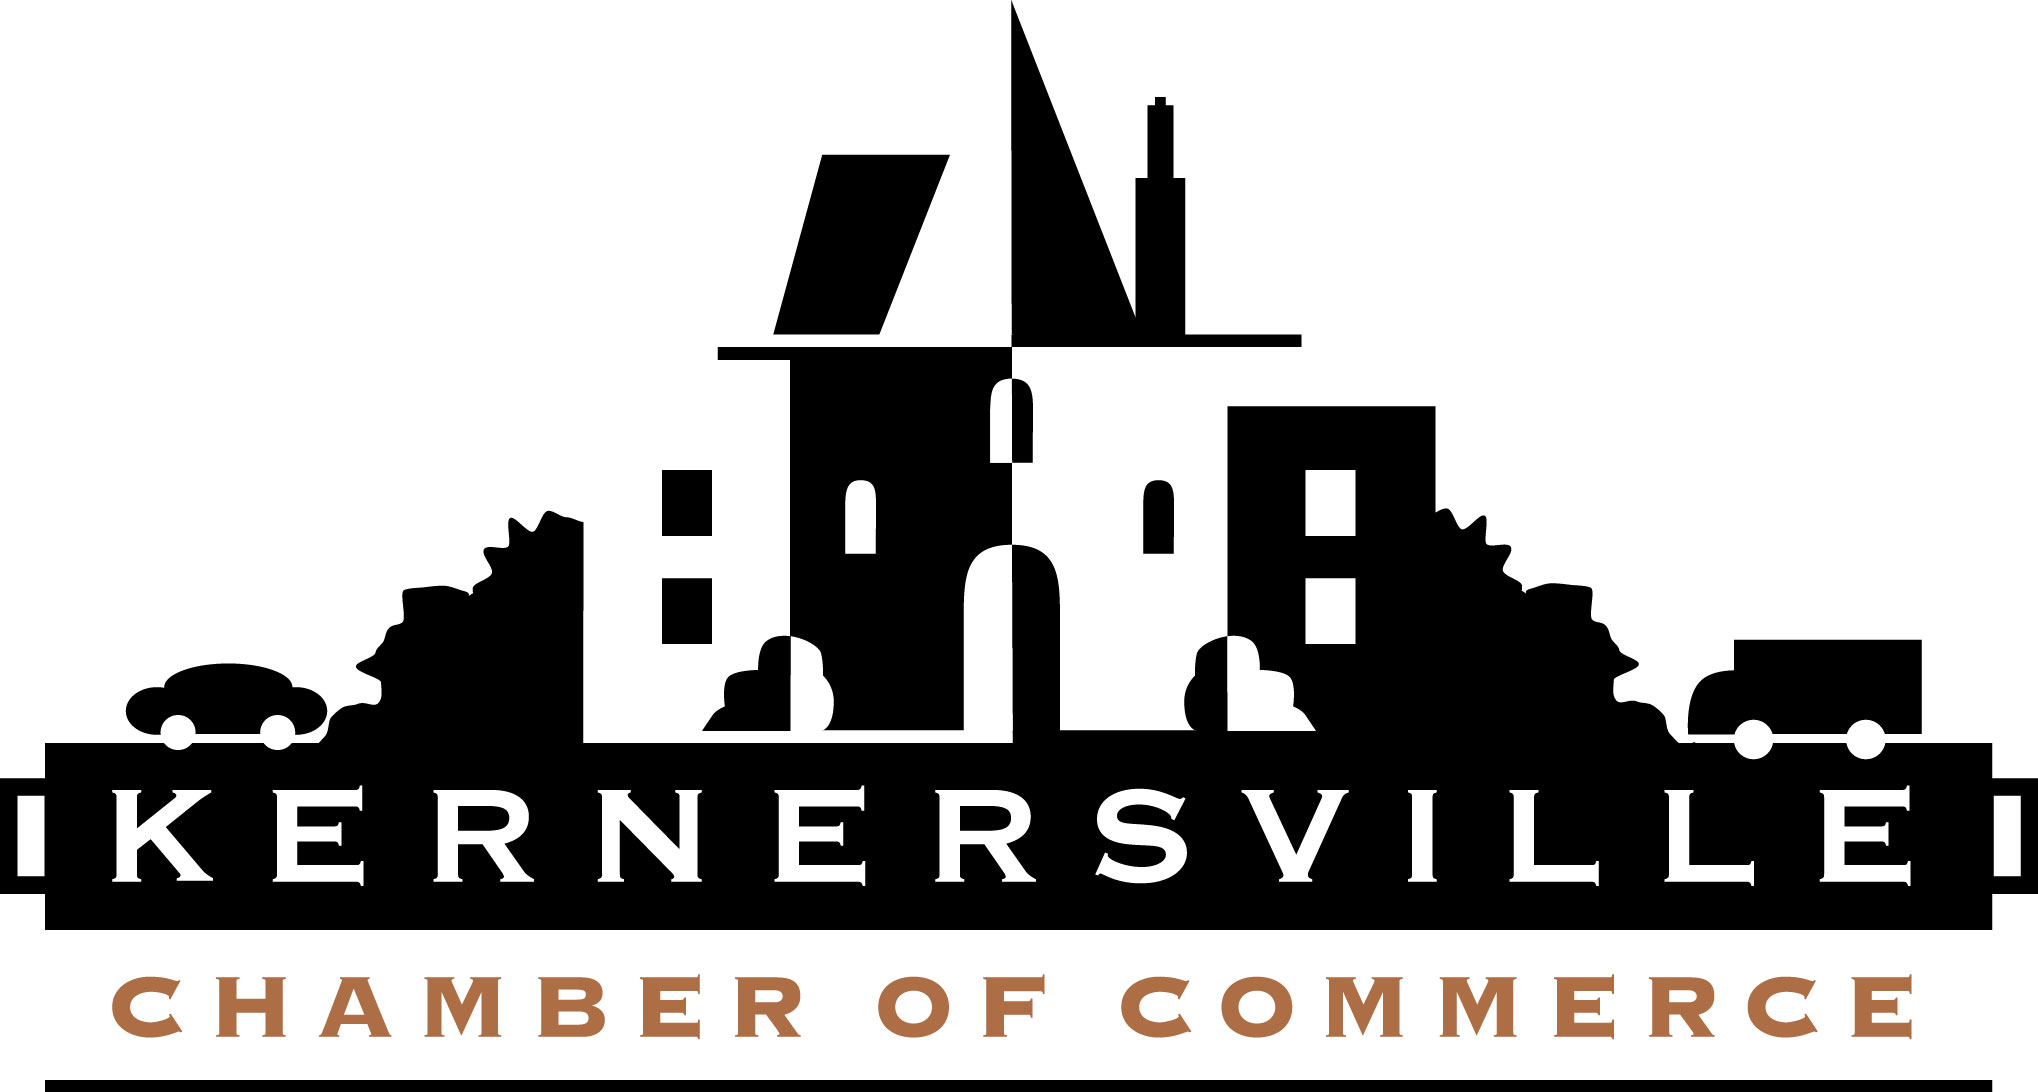 Logo of Kernersville Chamber of Commerce